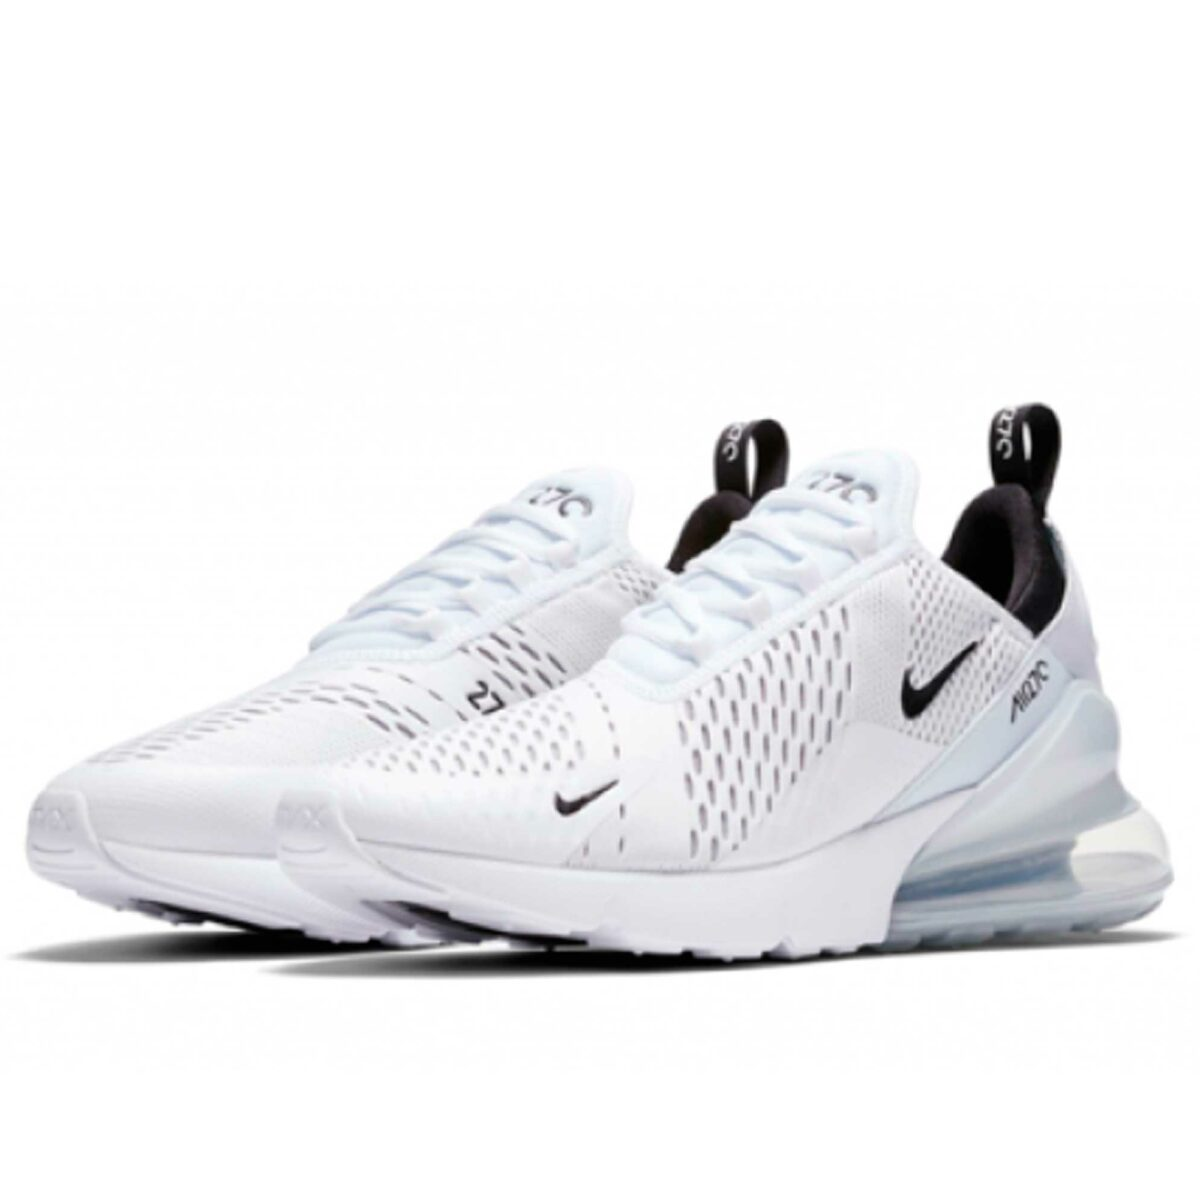 nike air max 270 all white AH8050_100 купить